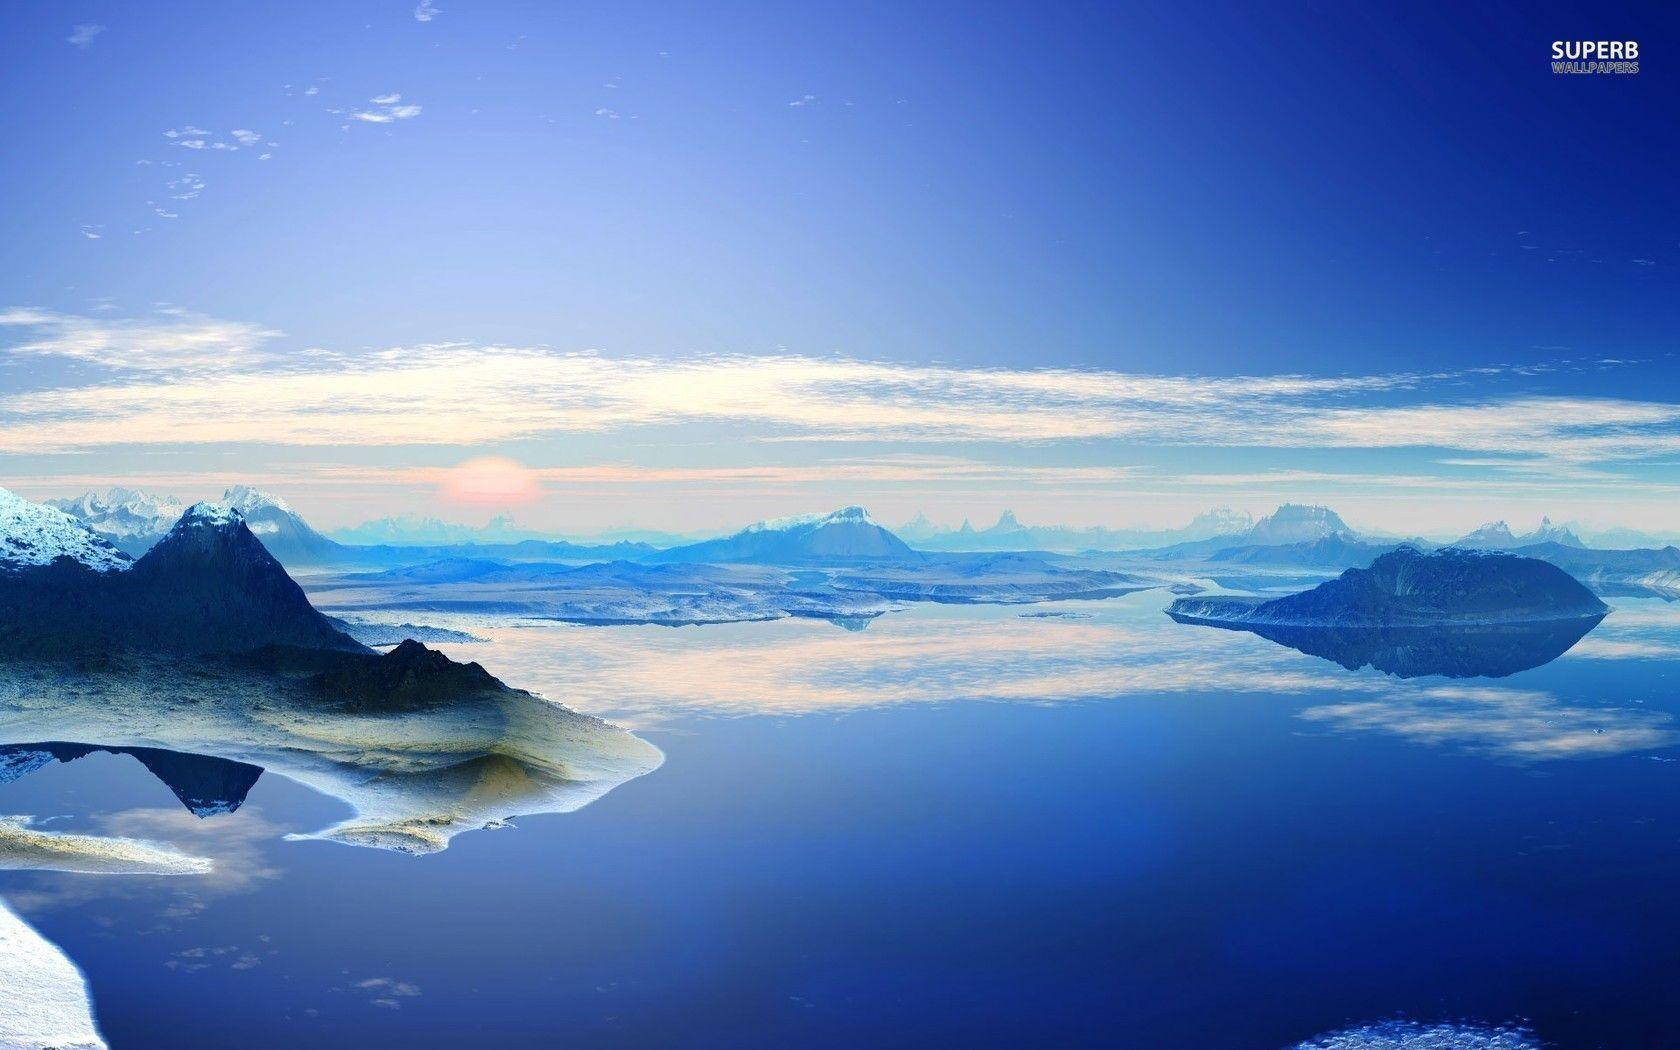 antarctica and clouds wallpaper - photo #27